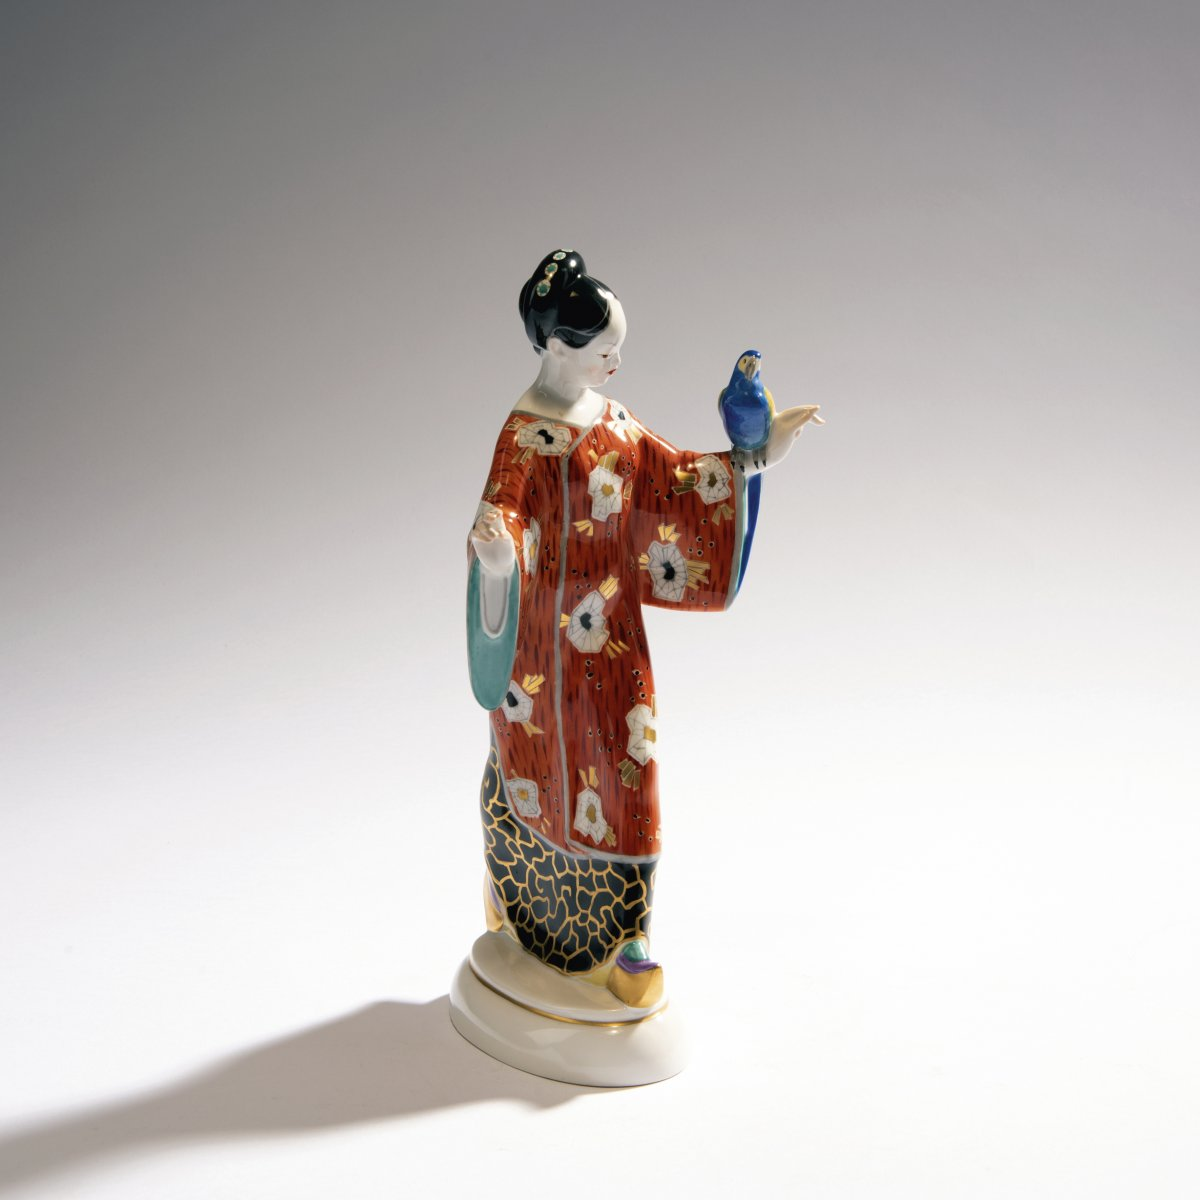 Lot 52 - Adolph Amberg, 'Chinese woman', 1910'Chinese woman', 1910H. 26.5 cm. Made by StPM Berlin, presumably